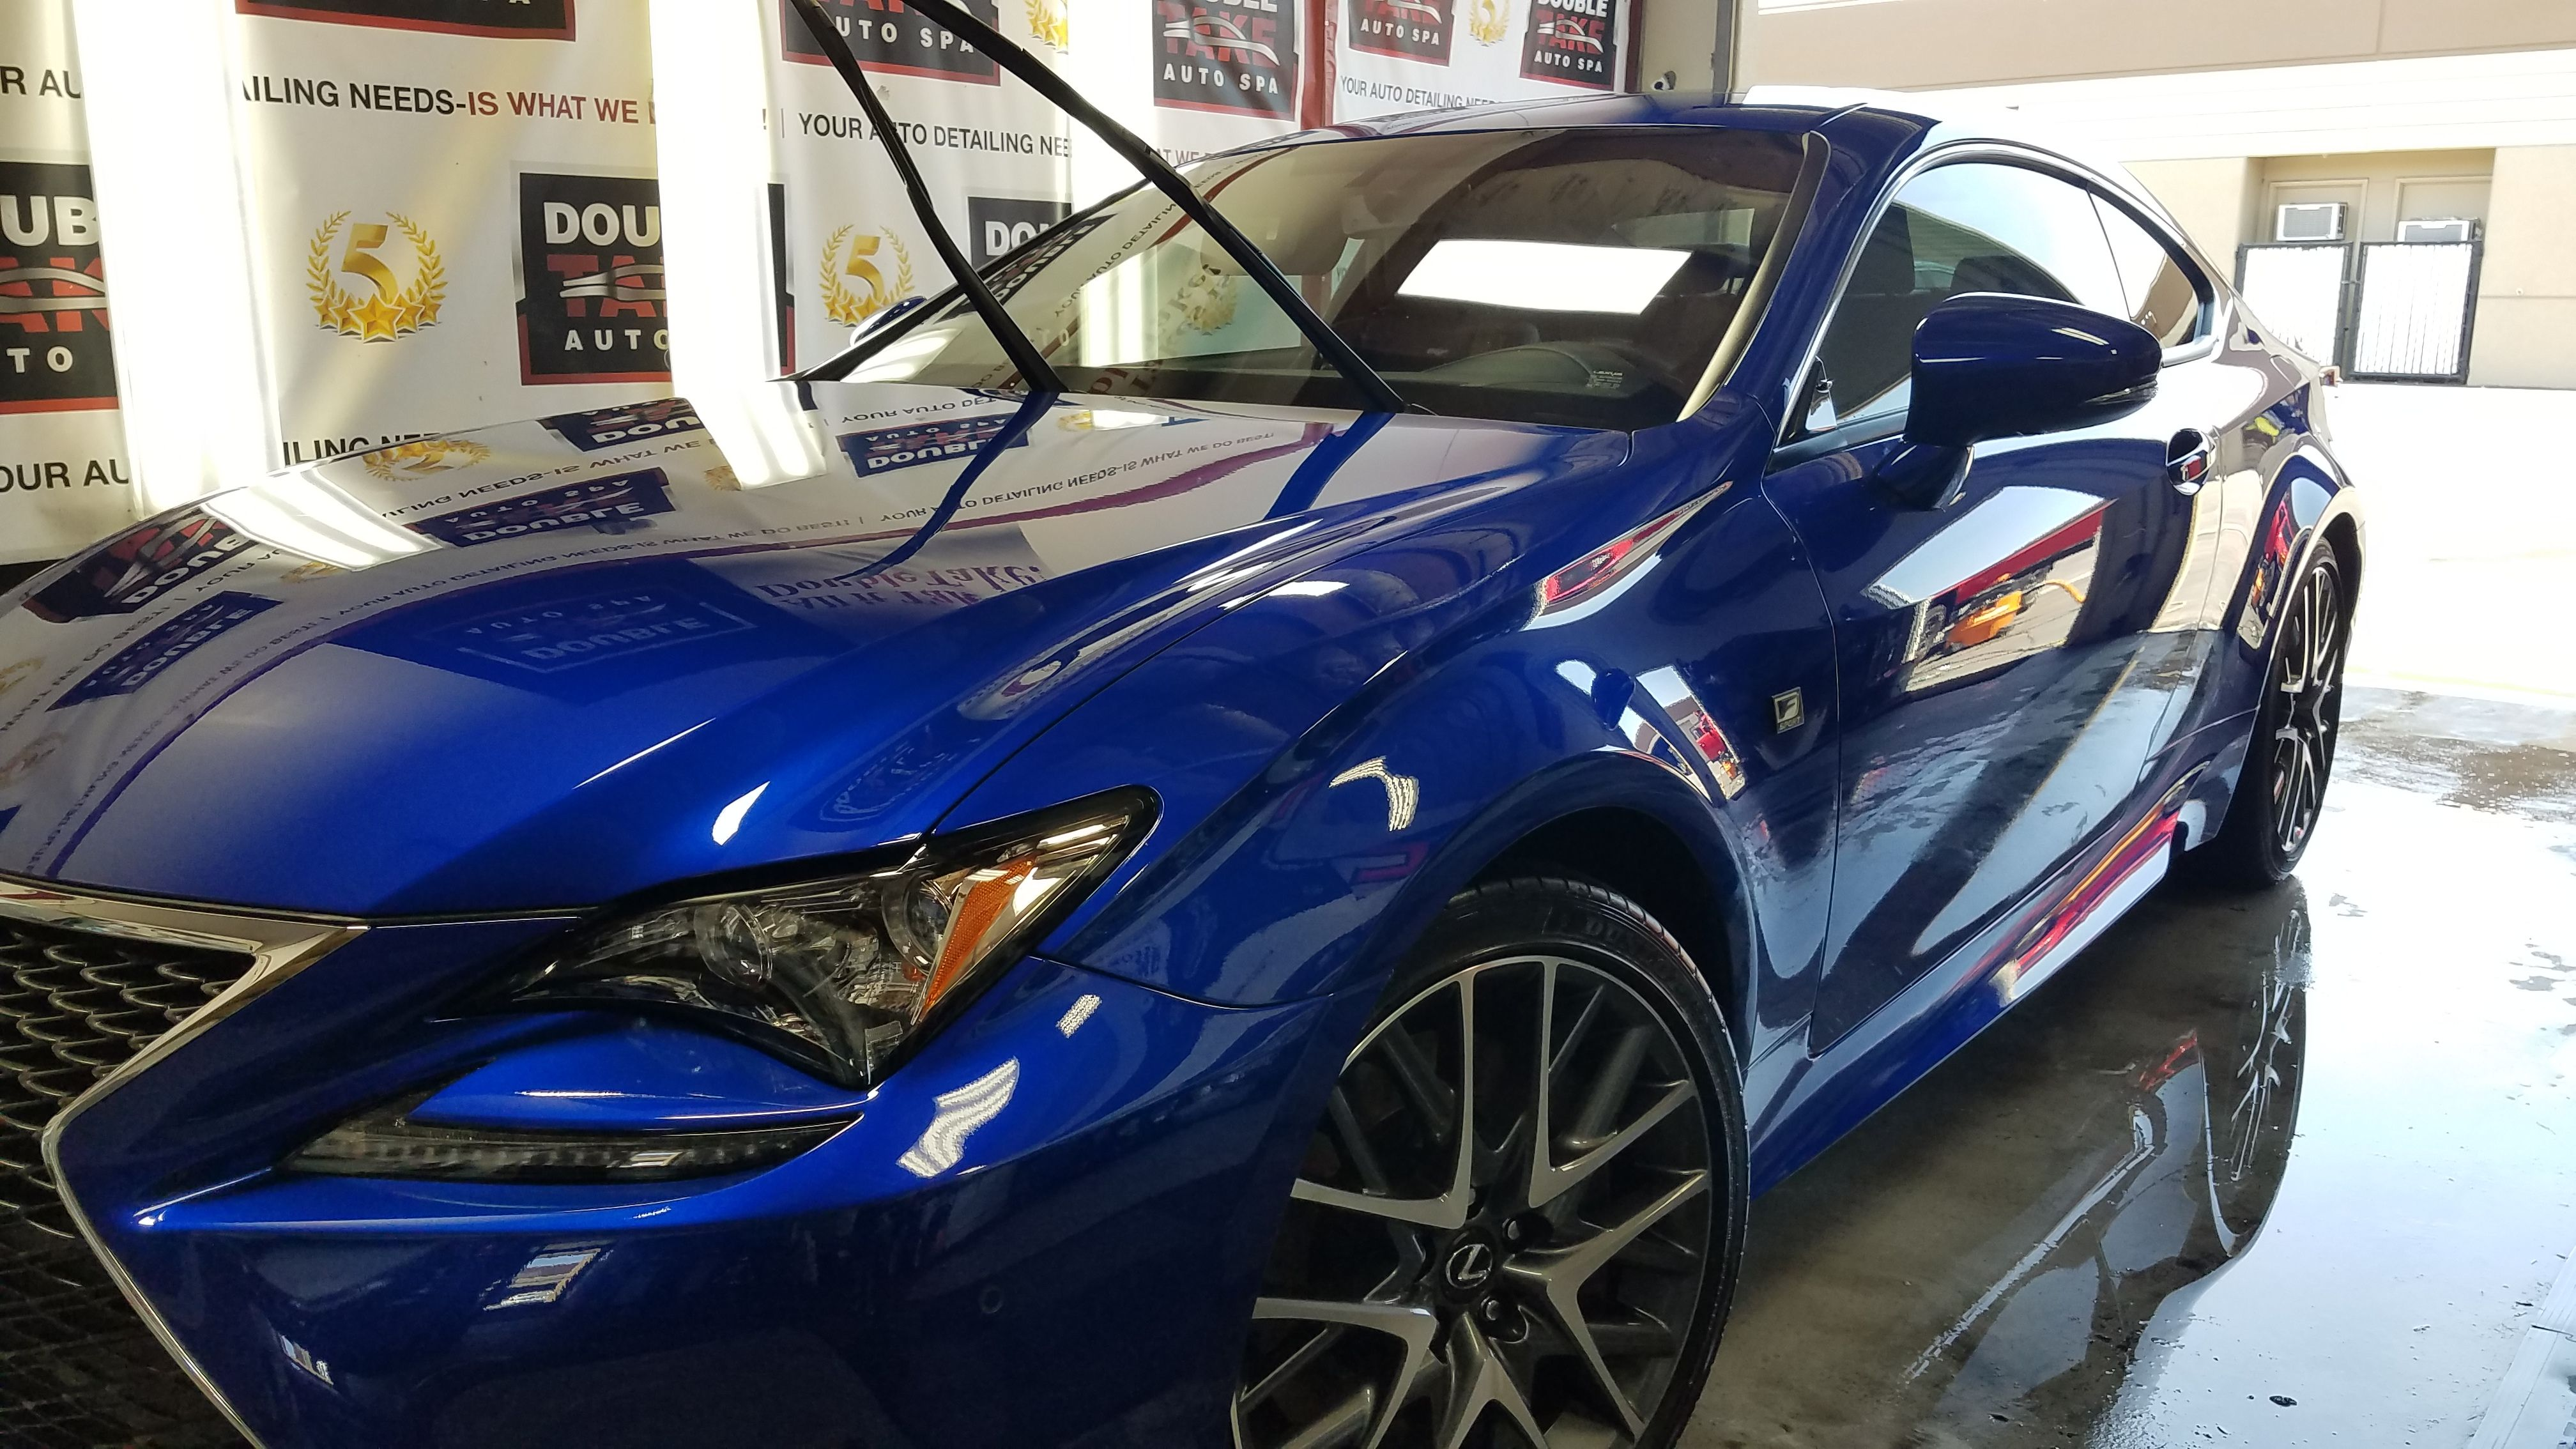 Pin by DoubleTake Auto Spa of Fremont. on Ceramic Coating